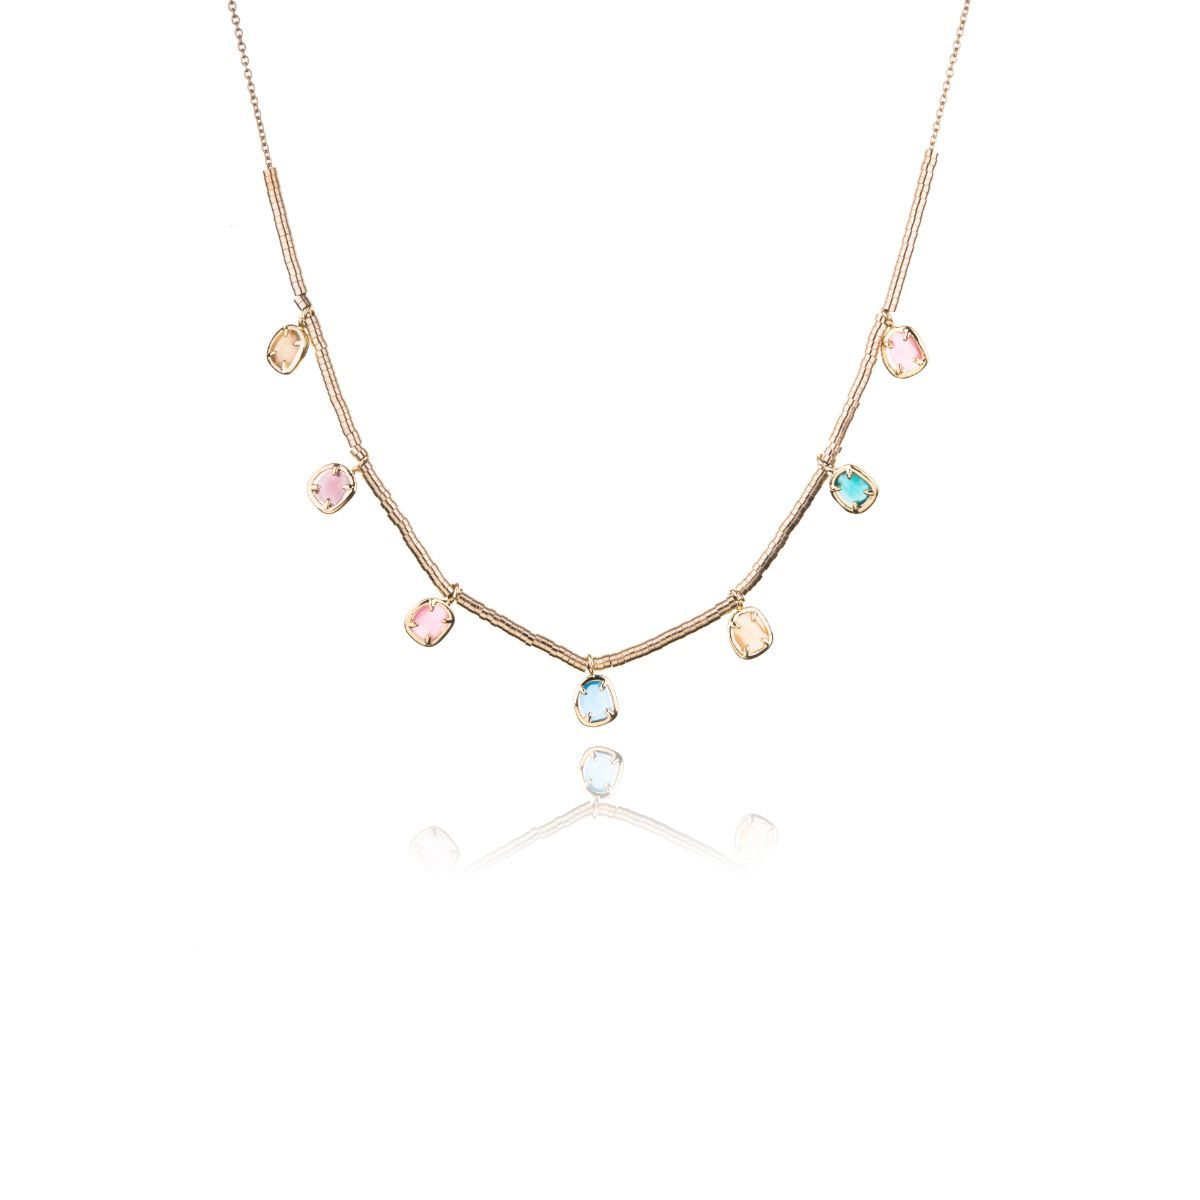 Chartres golden necklace with seven multicolored natural cat's eye stones set hanging